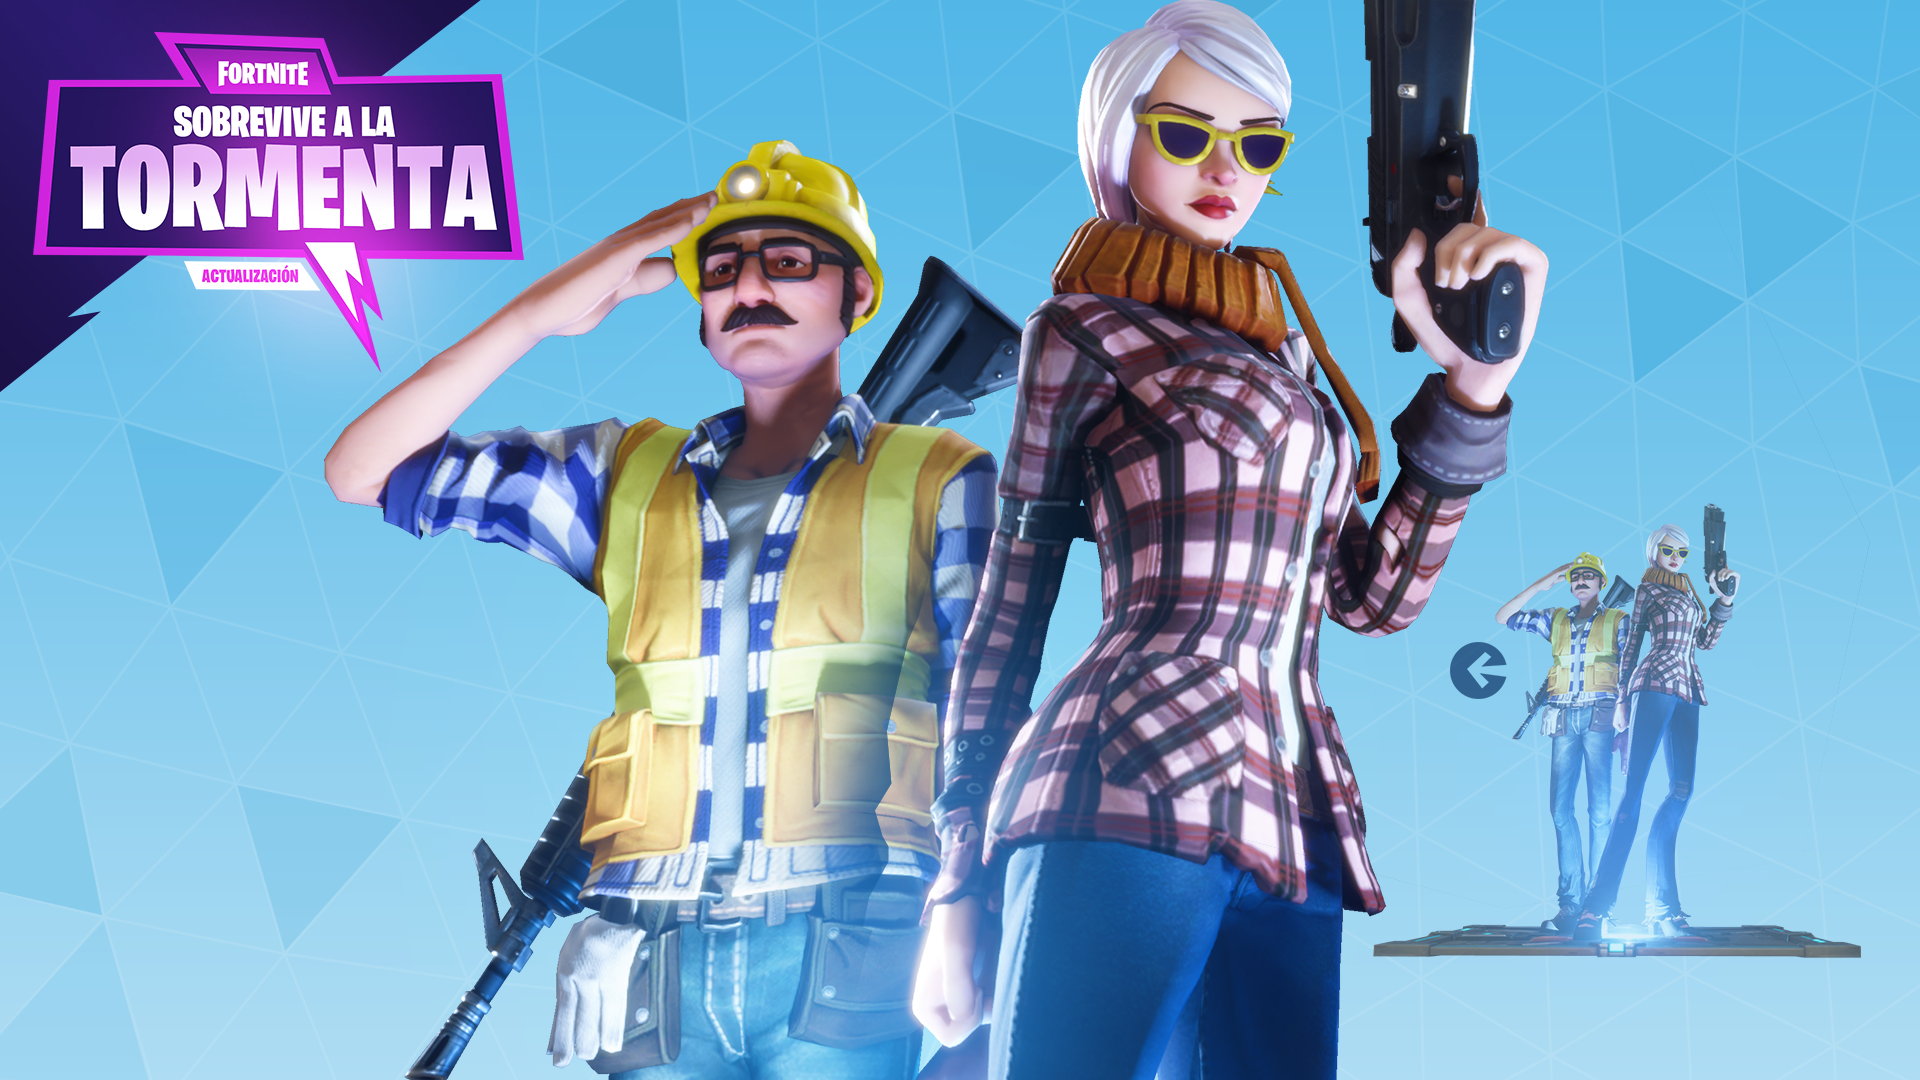 Fortnite%2Fblog%2Fsurvive-the-storm---release-notes%2FES_Defenders-1920x1080-f8e801327405f83cbfb20c0443d016032d4d2e91